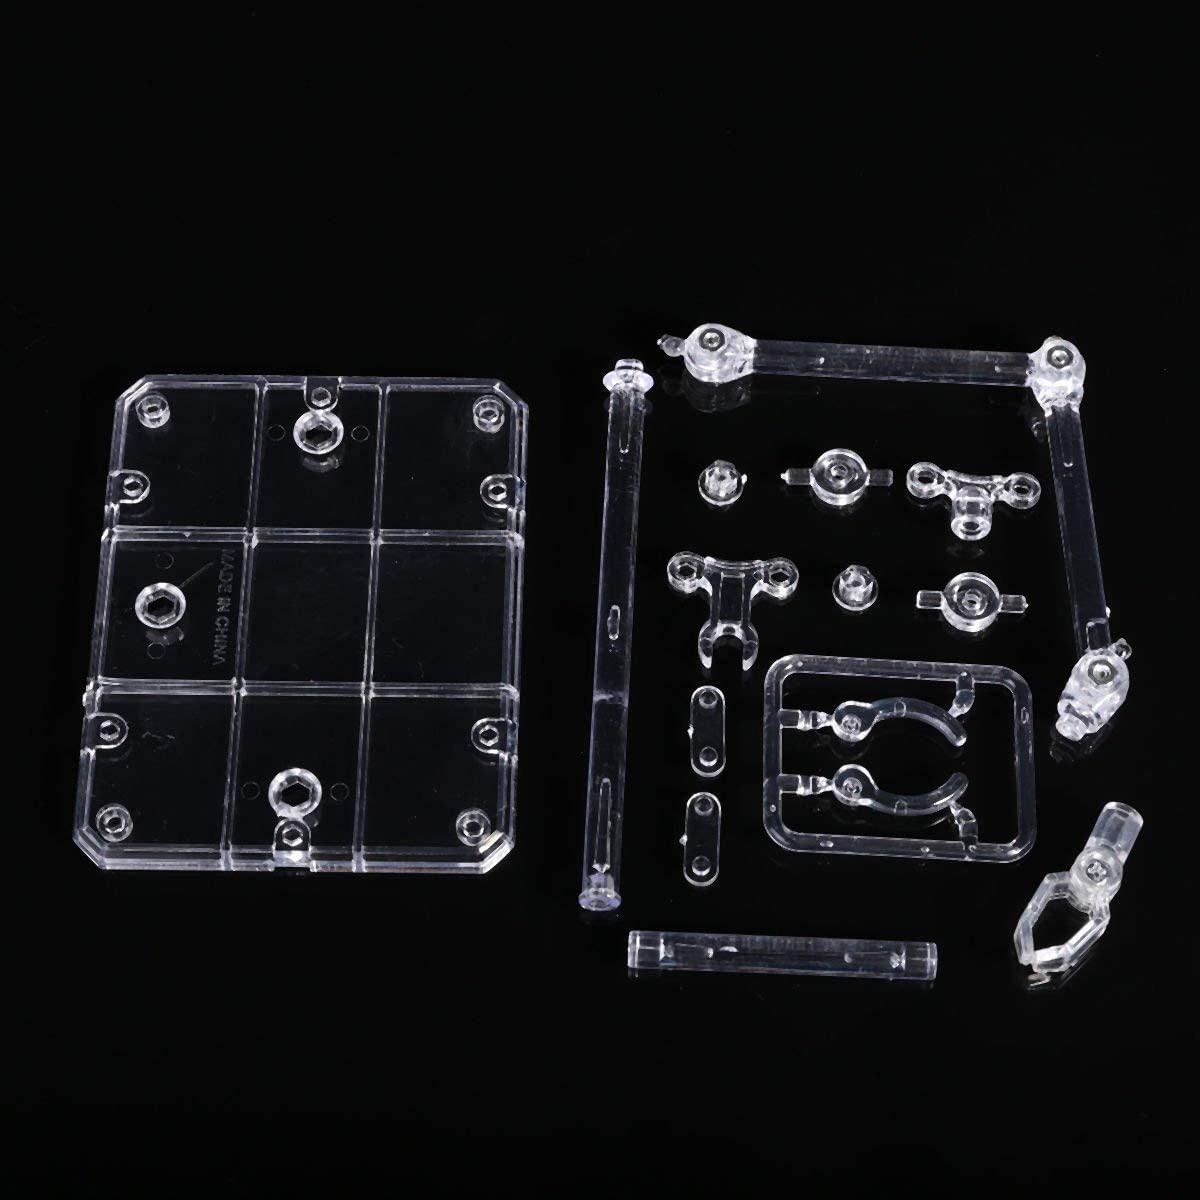 Base Suitable Display Stand Clear For 1:144 HG Gundam Figure Model Toy M6U8